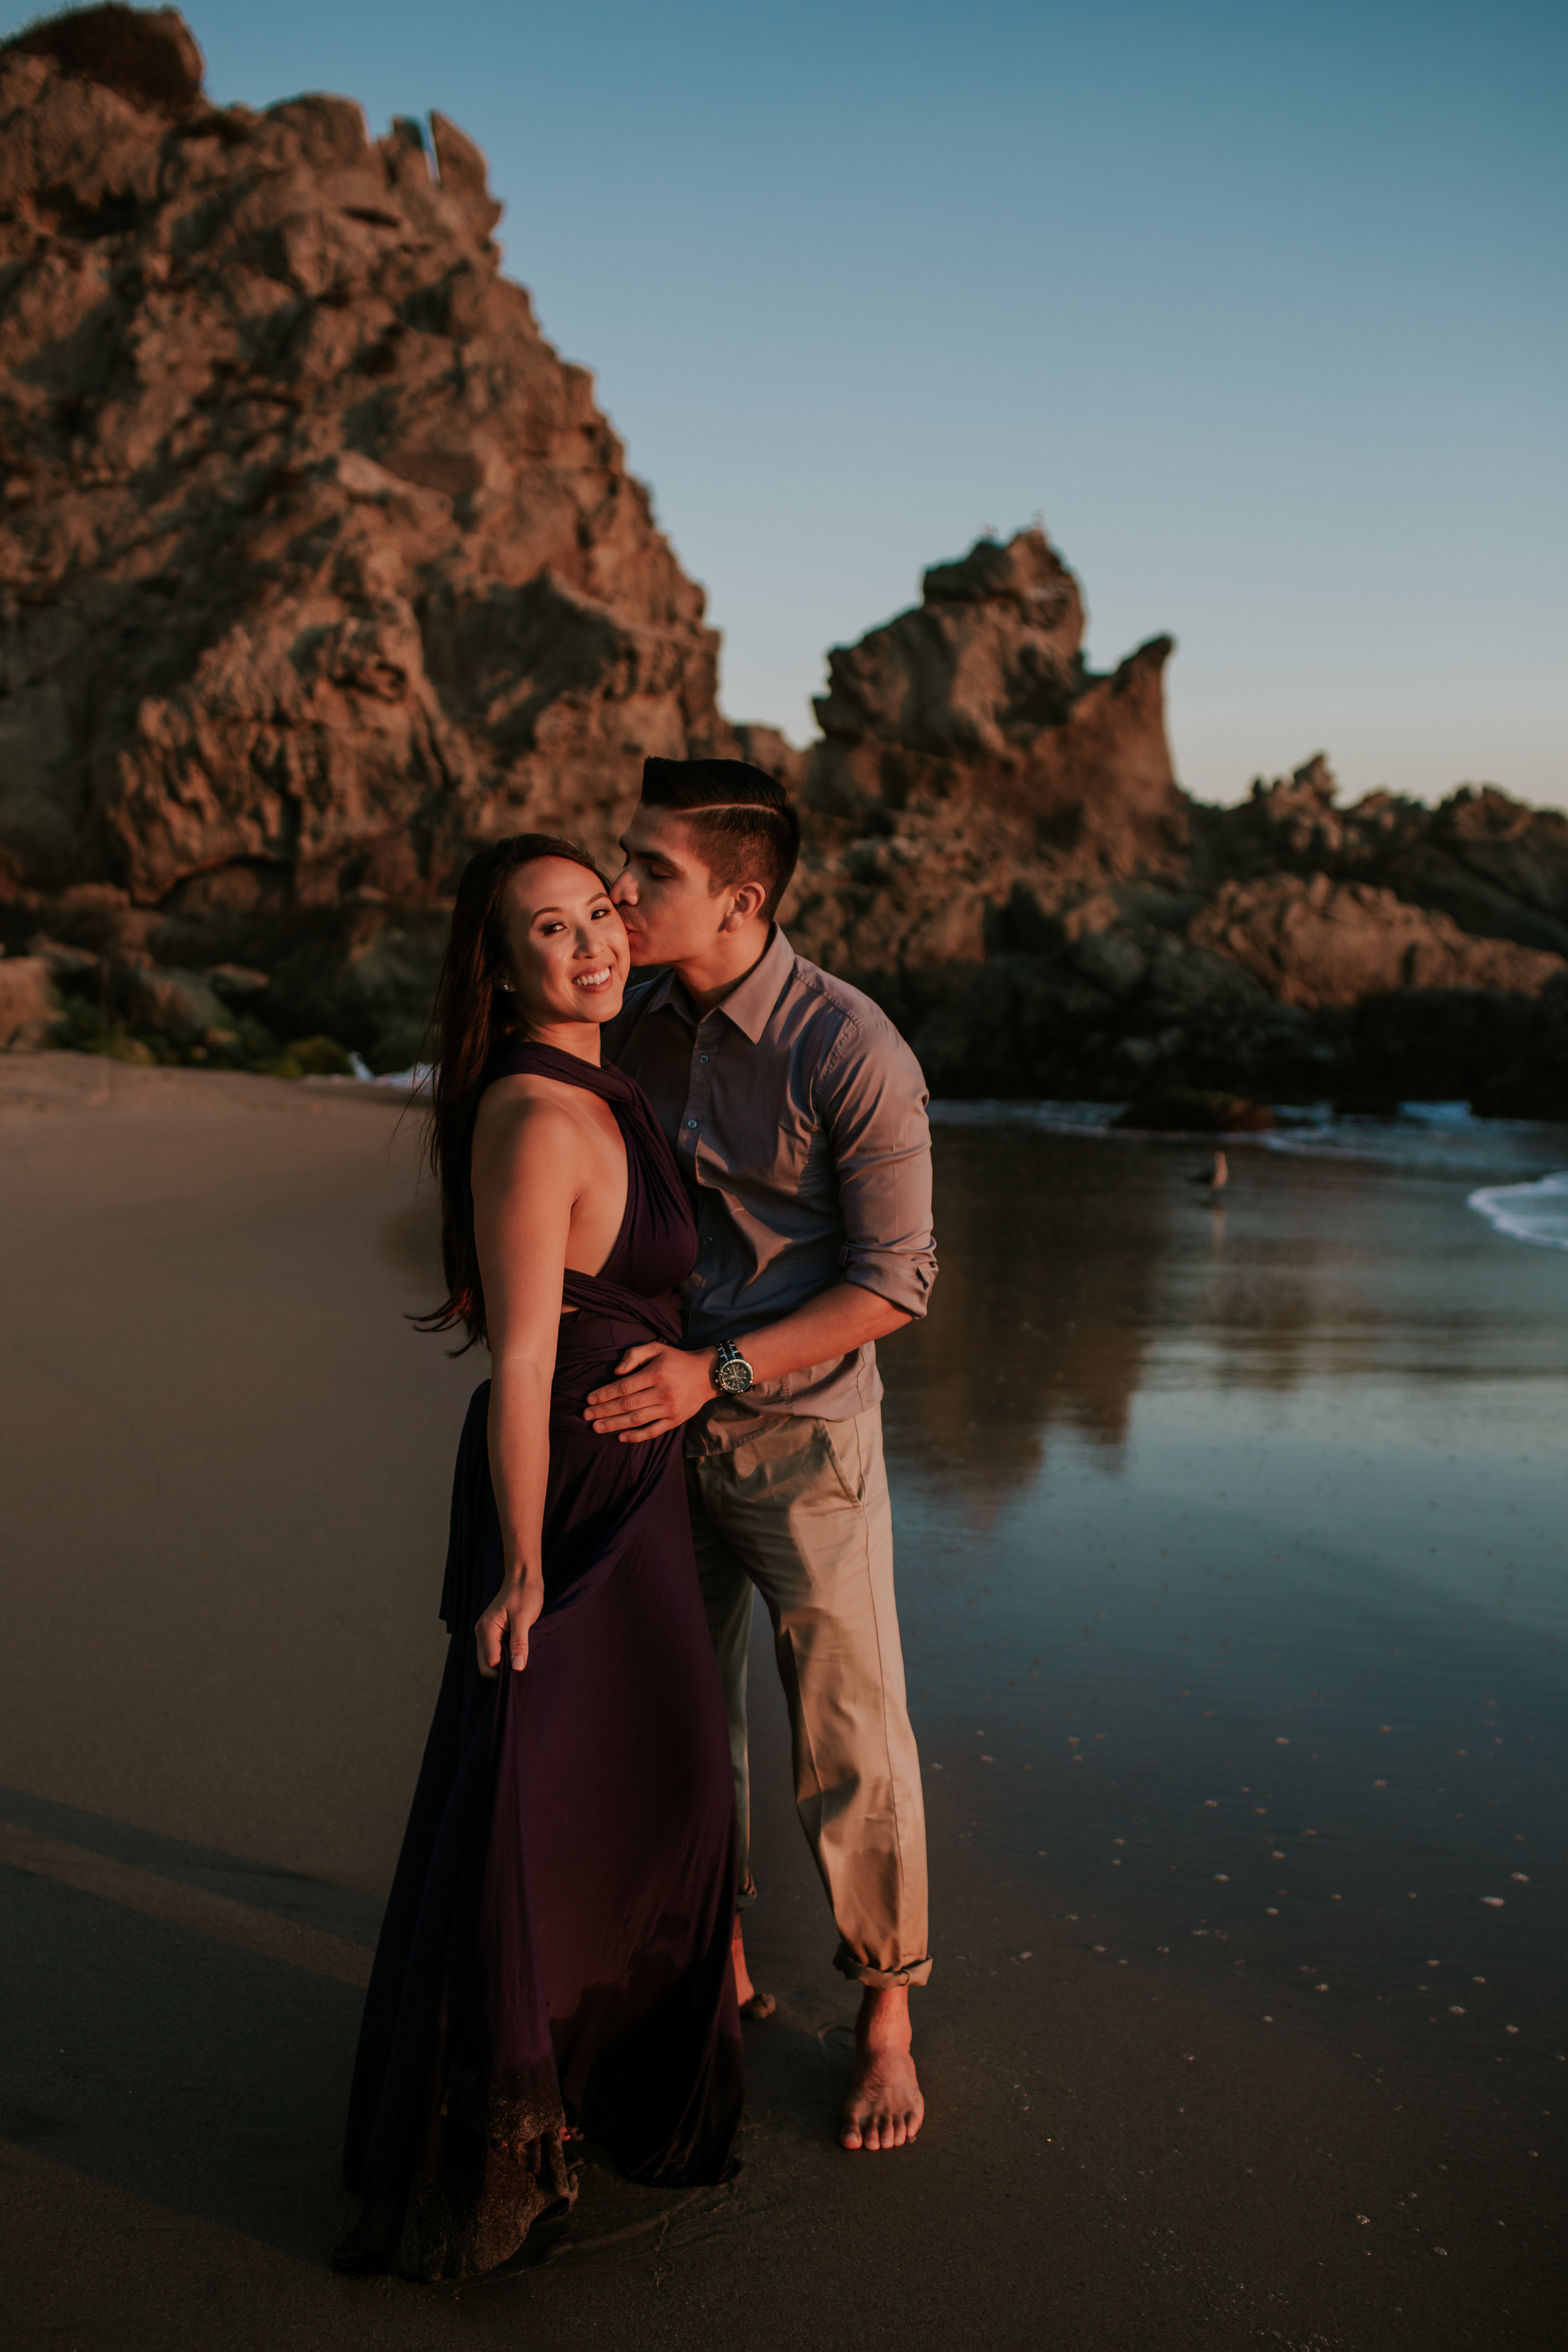 Jennifer and Andrew Engagement Point Mugu state park Malibu Ventura -120.jpg